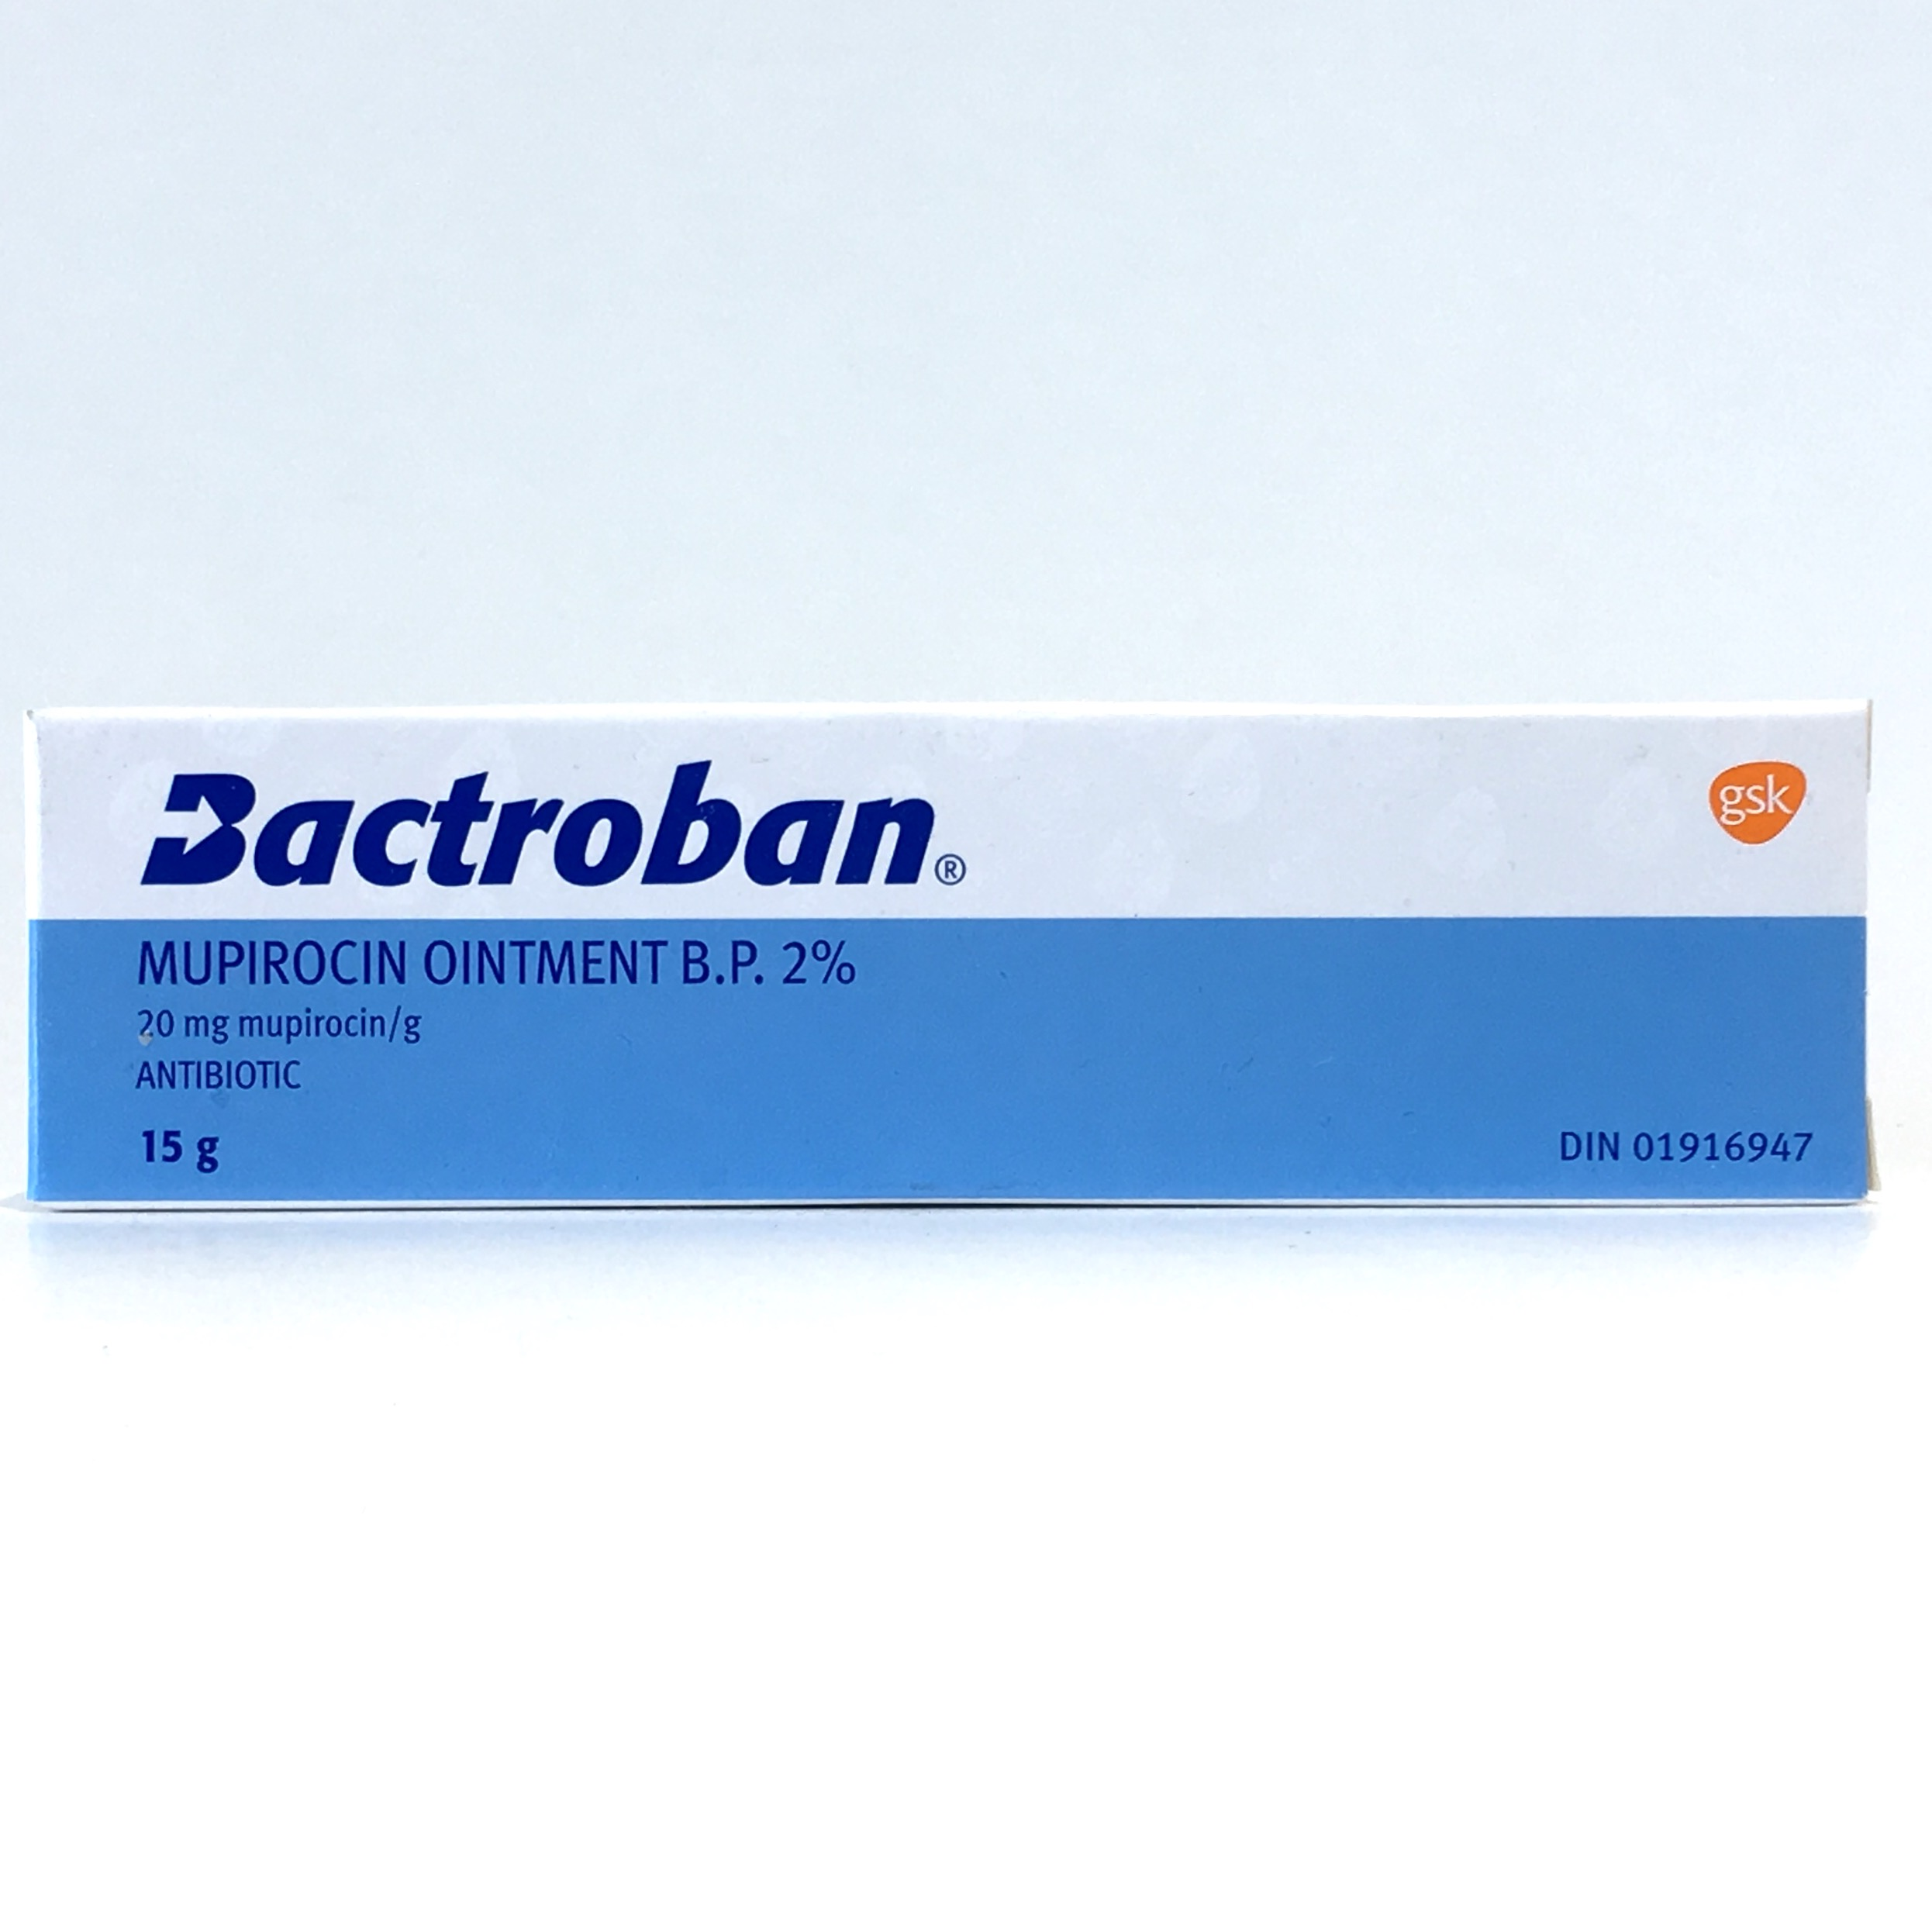 The drug Bactroban. Analogues of Bactroban and reviews about them